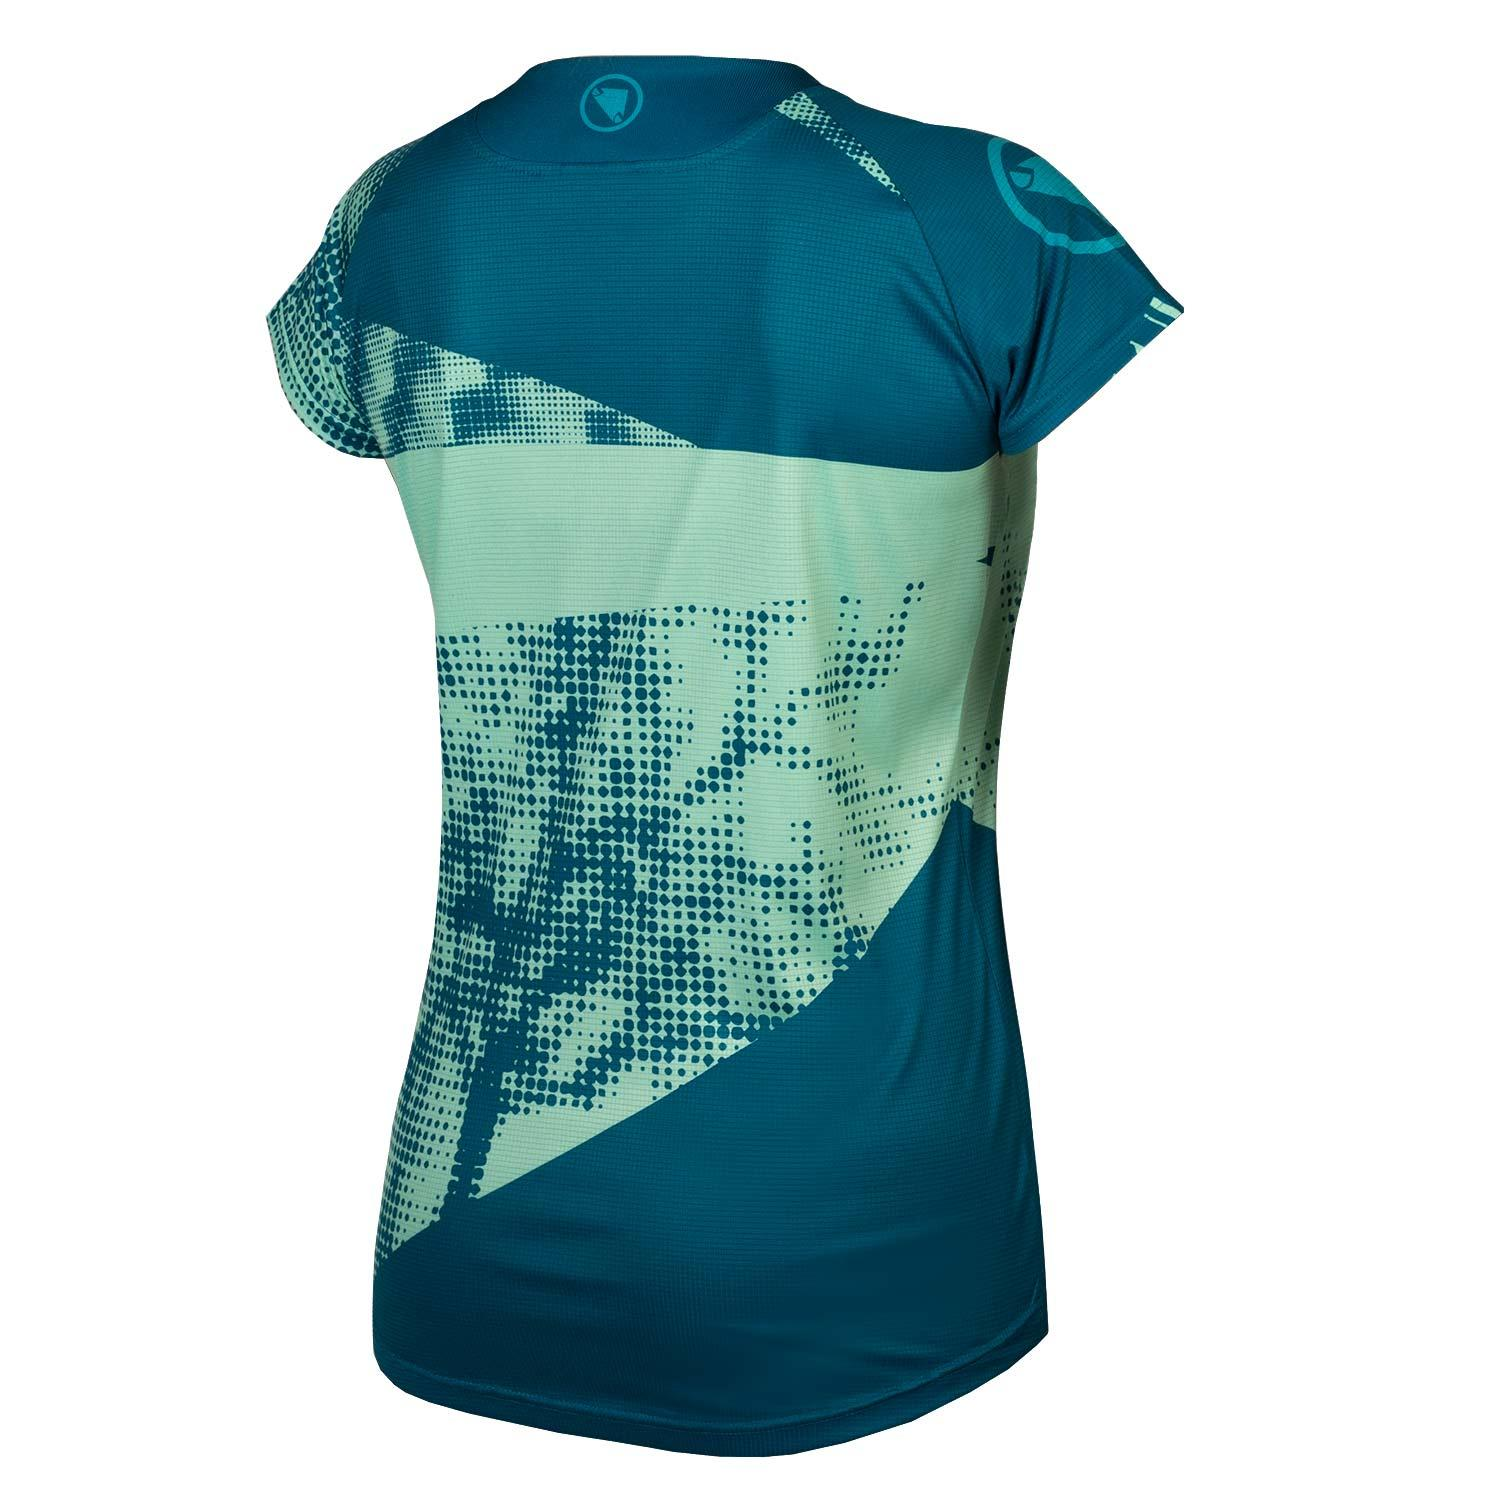 Endura Wielershirt MTB Korte Mouwen voor Dames Blauw / Women's Singletrack Dots T LTD Kingfisher